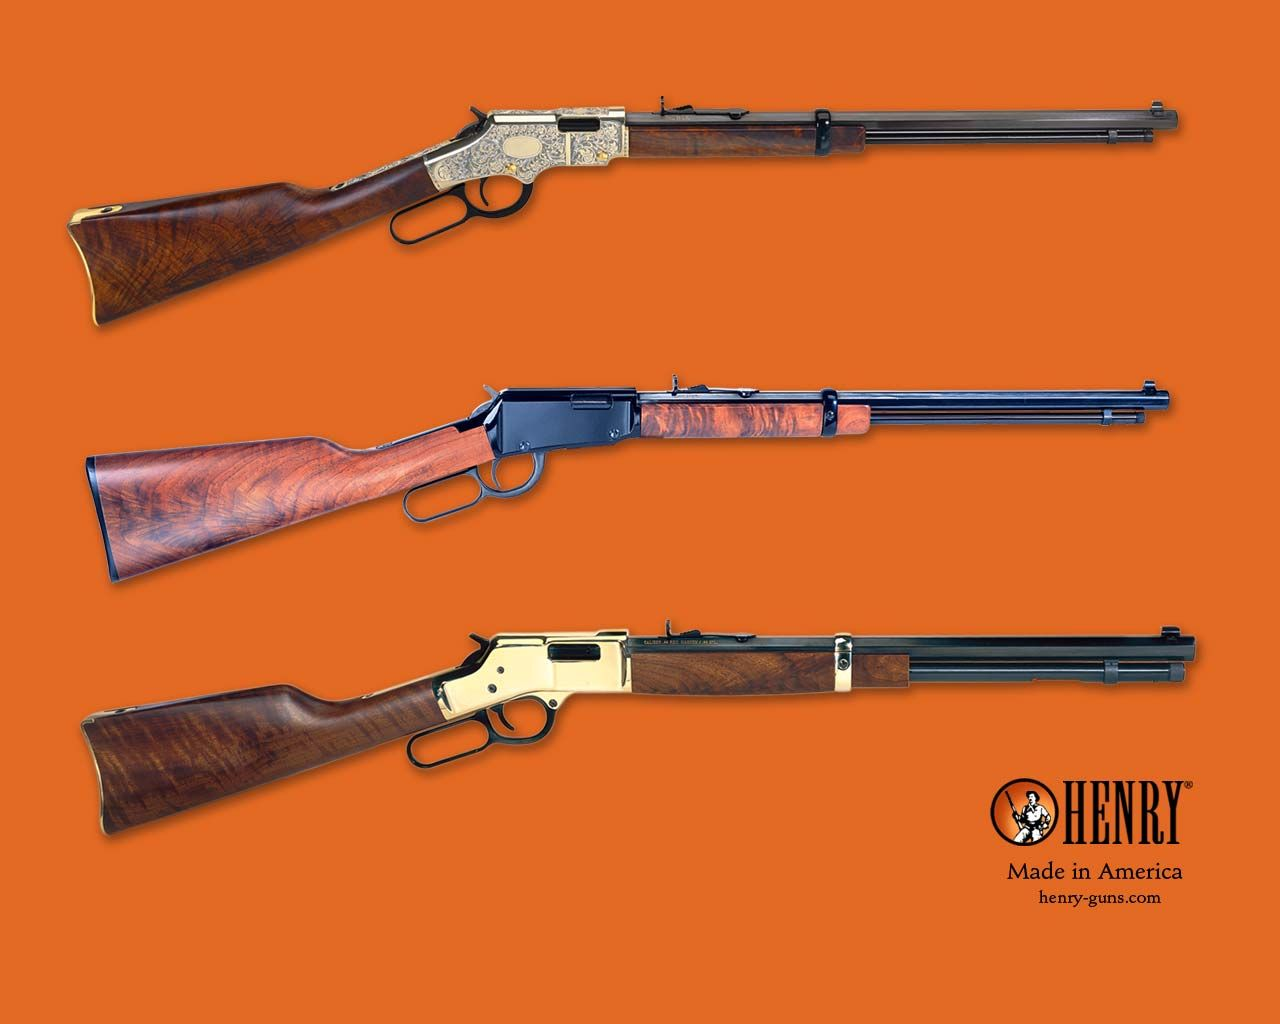 Henry Rifle Wallpaper Repeating Arms Fine Rifles Made In Diagram Http Wwwbevfitchettus Springfield1911a1pistols Exploded America And Priced Right